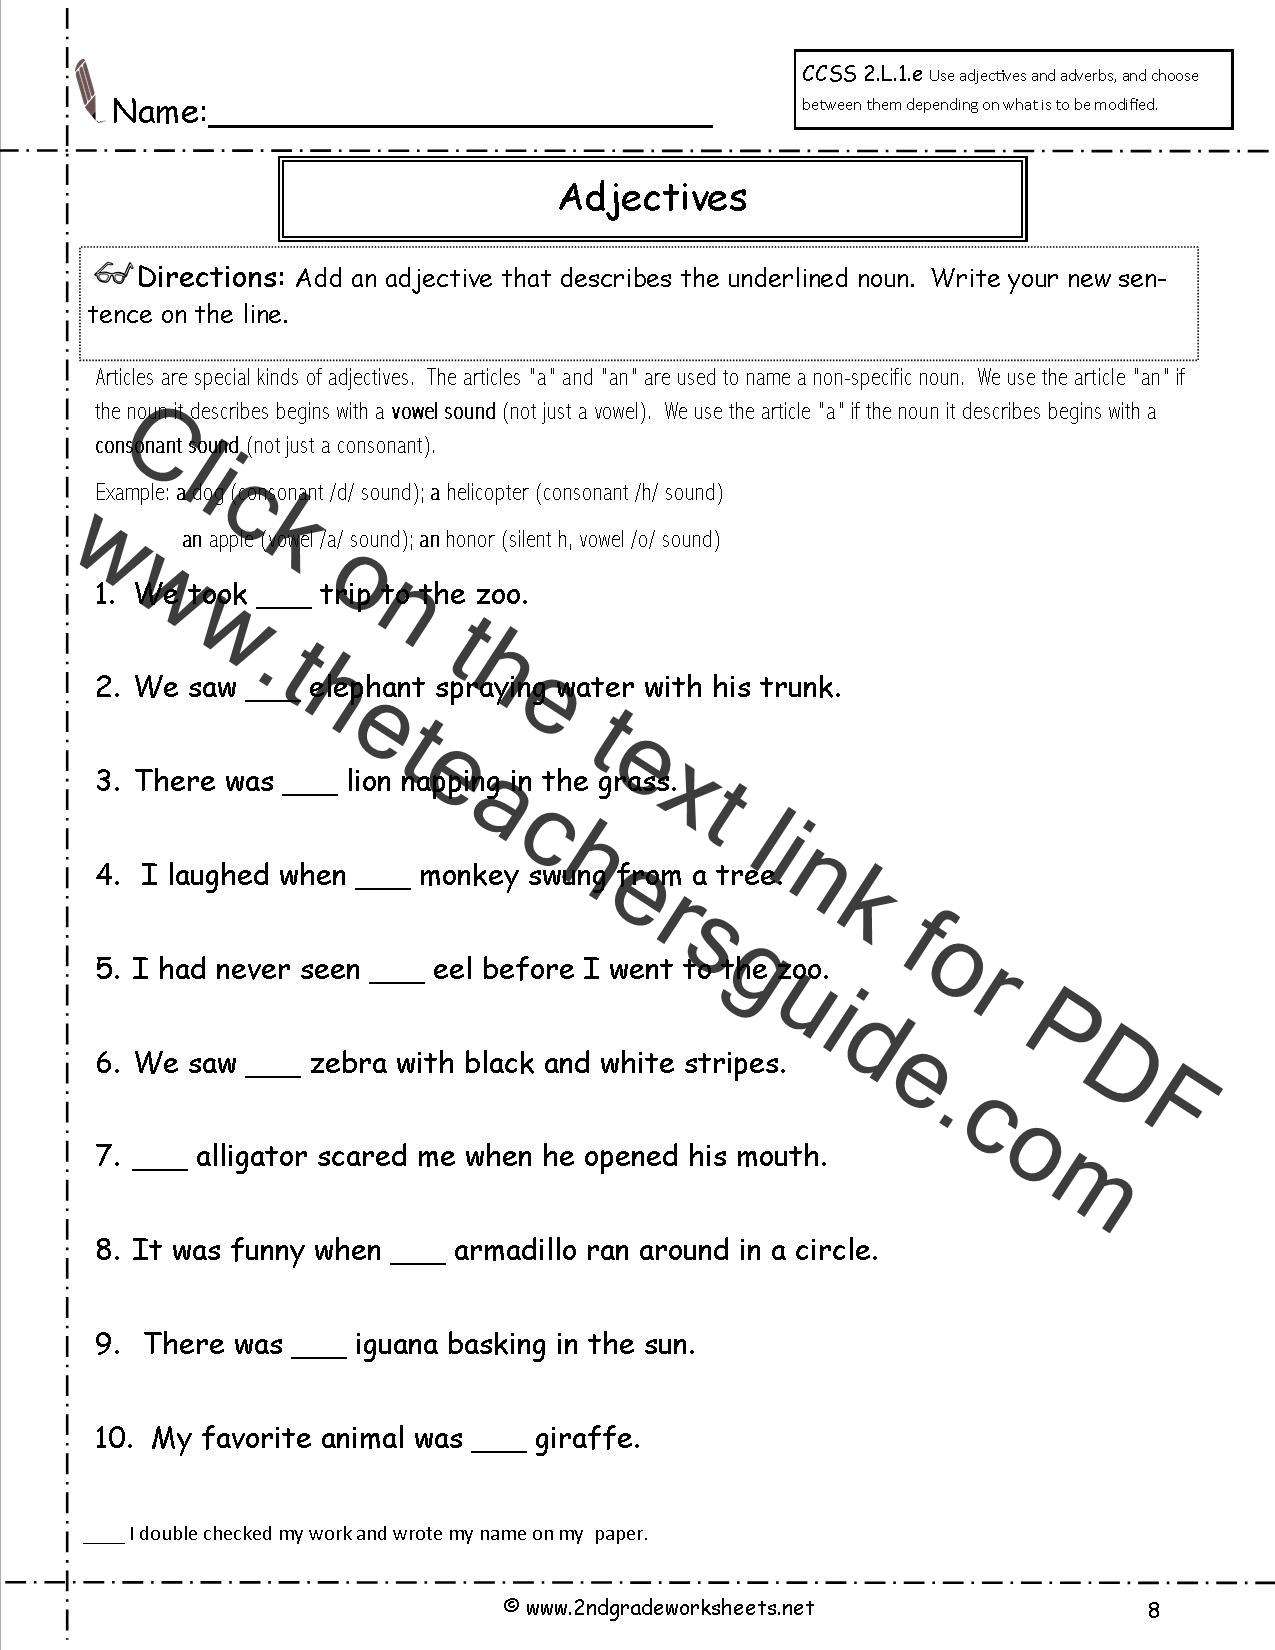 Worksheets Second Grade Grammar Worksheets free languagegrammar worksheets and printouts adjectives worksheets